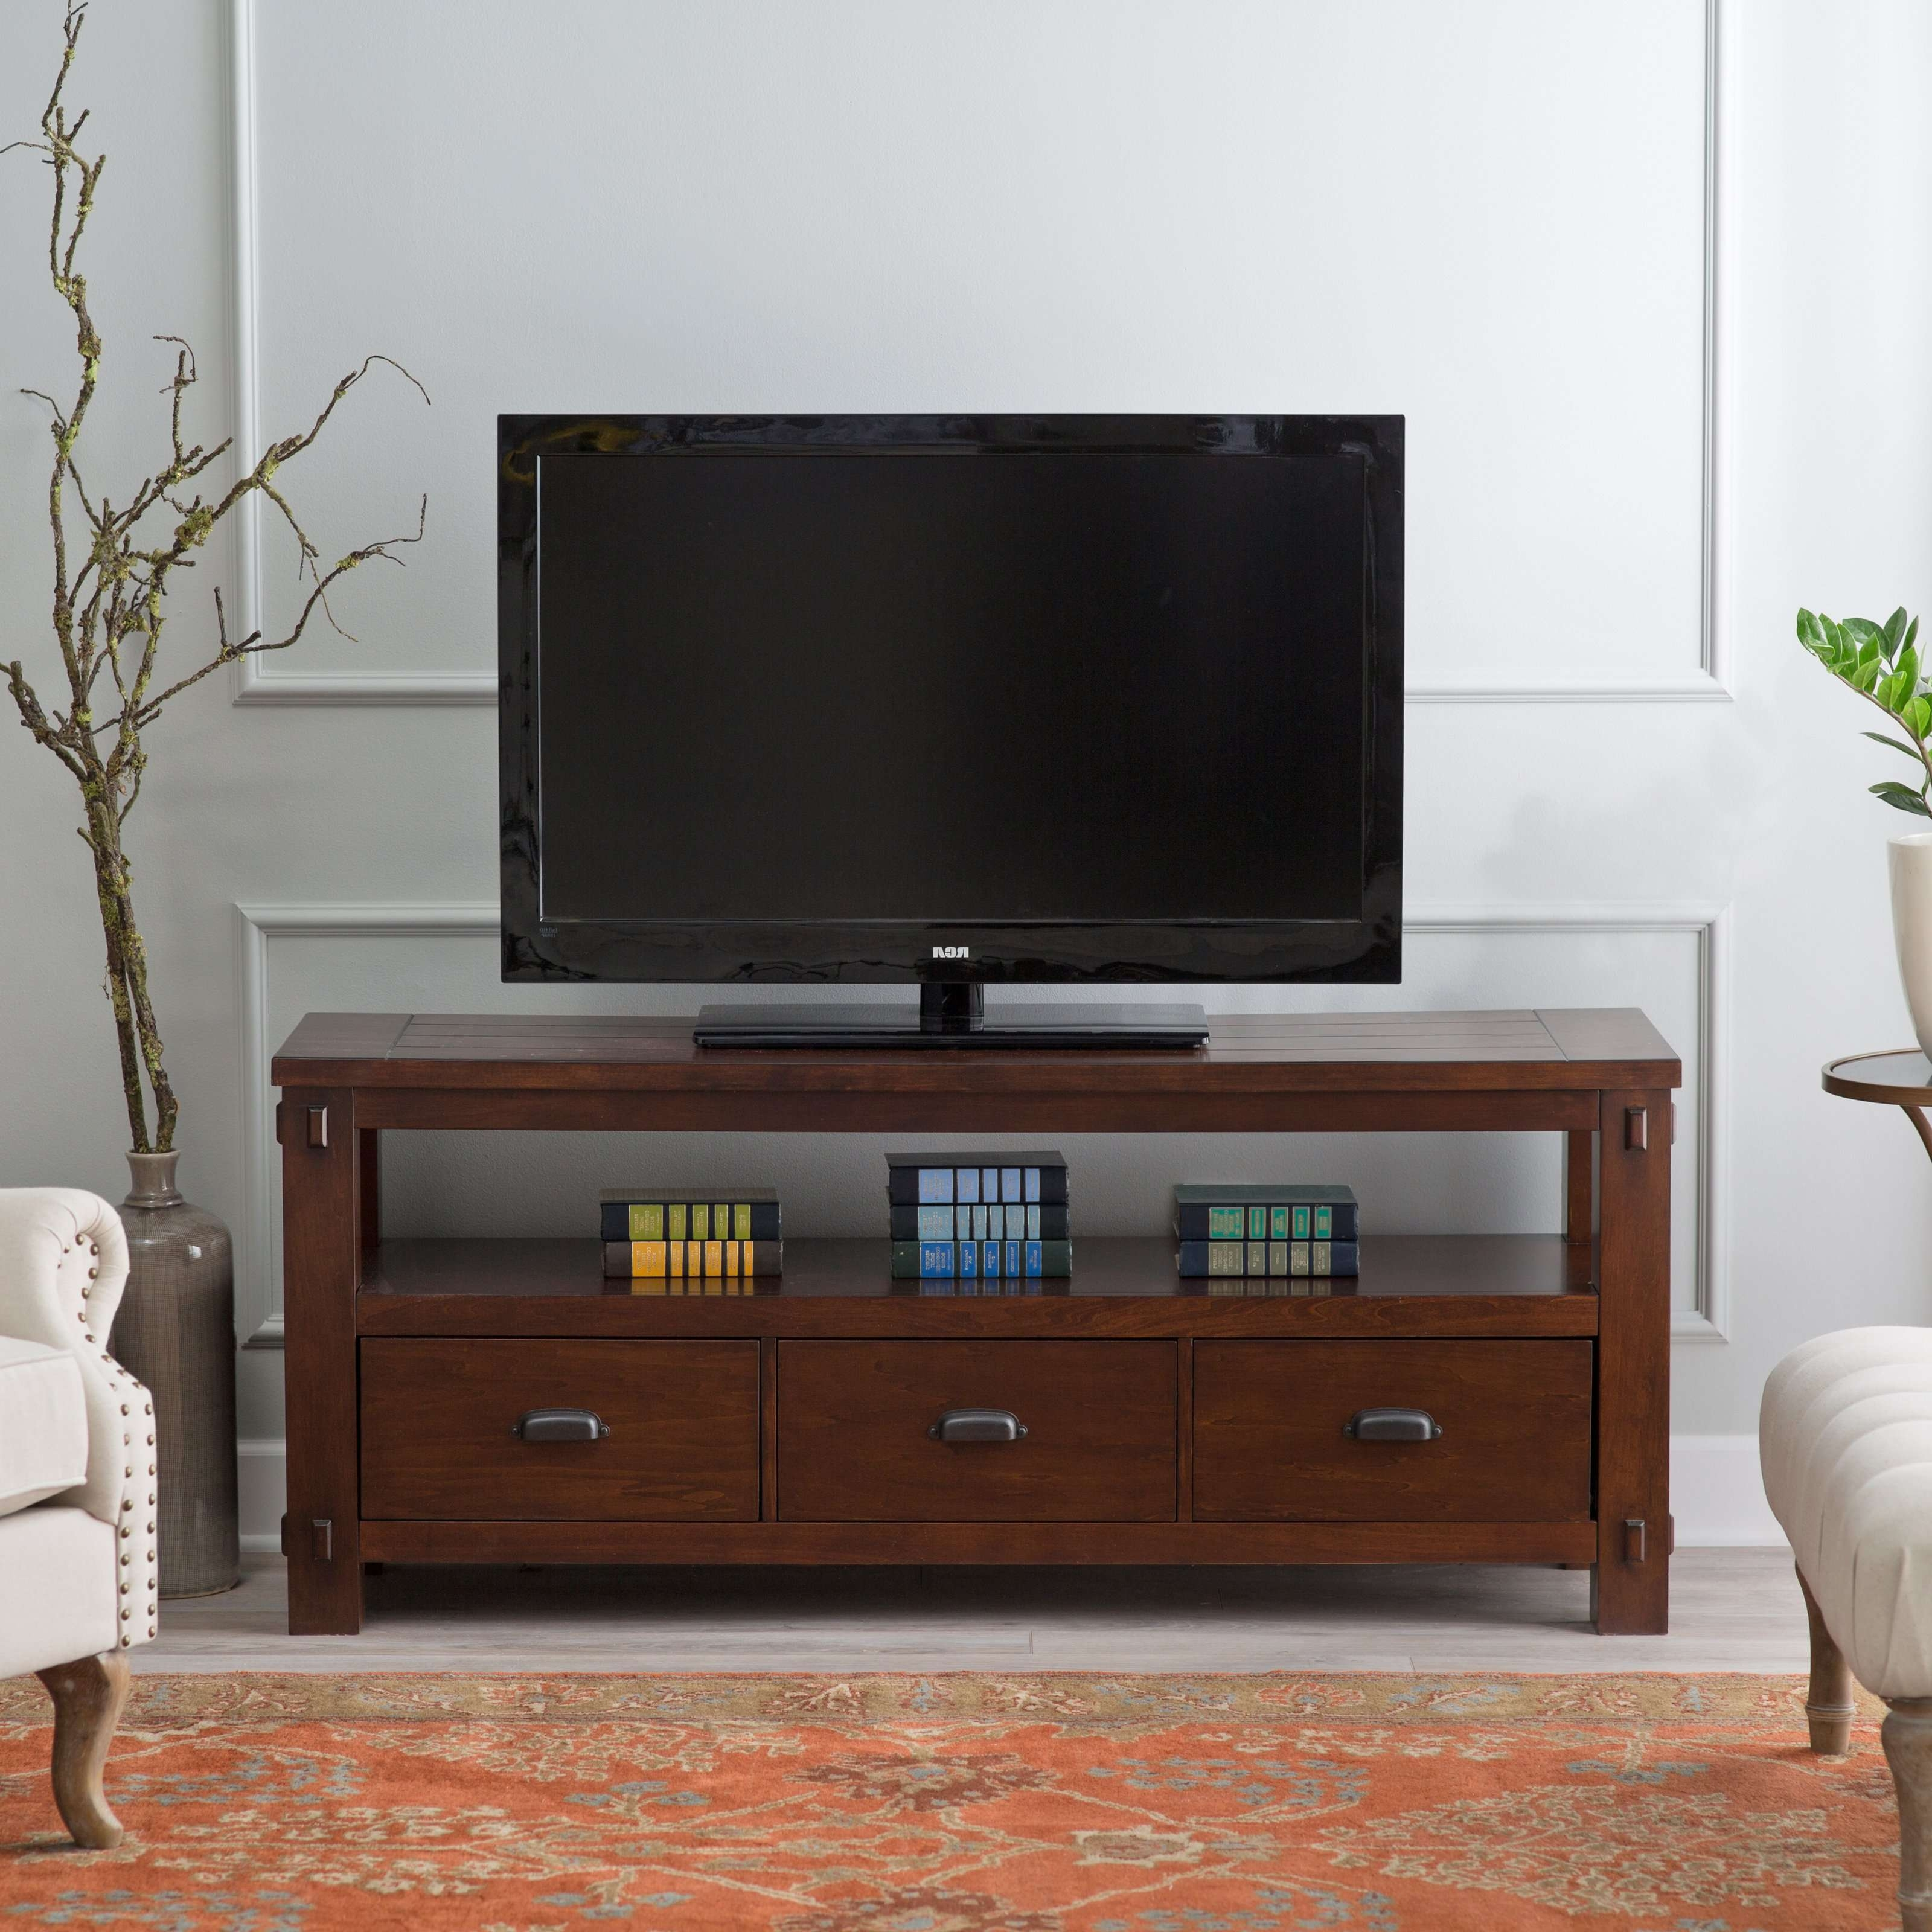 Tv Stand : 42 Stupendous Thin Tall Tv Stand Picture Concept Thin Intended For Compact Corner Tv Stands (View 13 of 15)